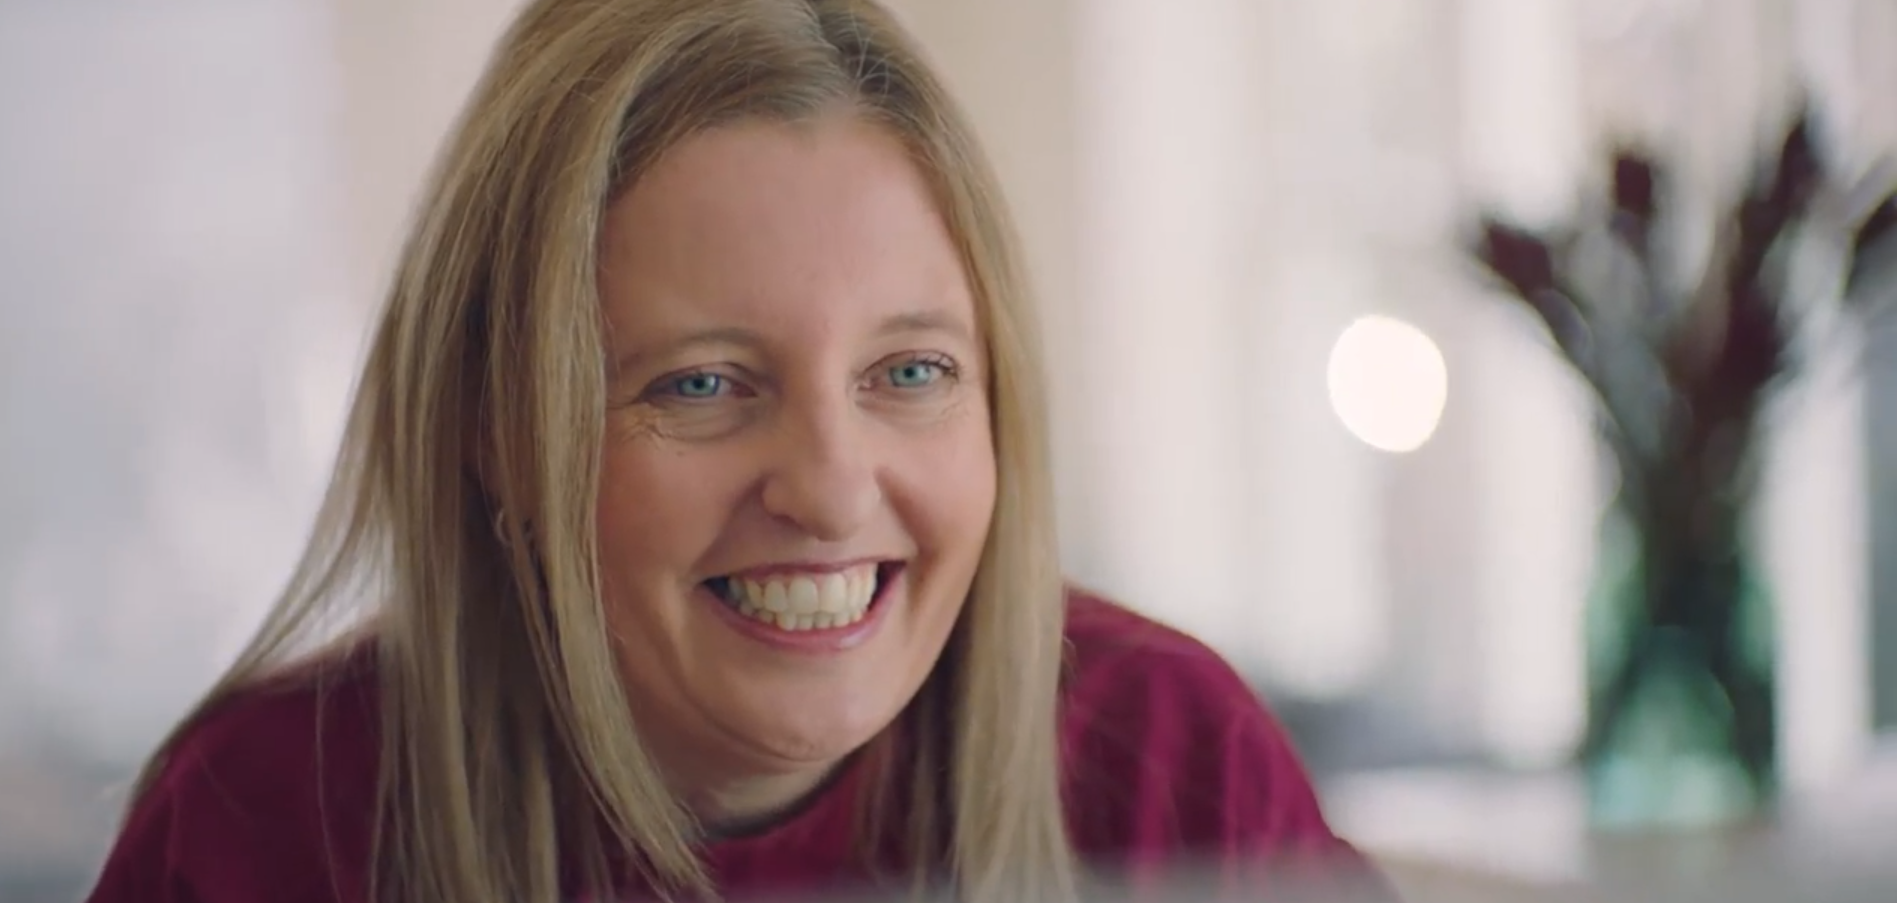 LinkedIn showcases the power of community in latest #InItTogether campaign via DDB Sydney